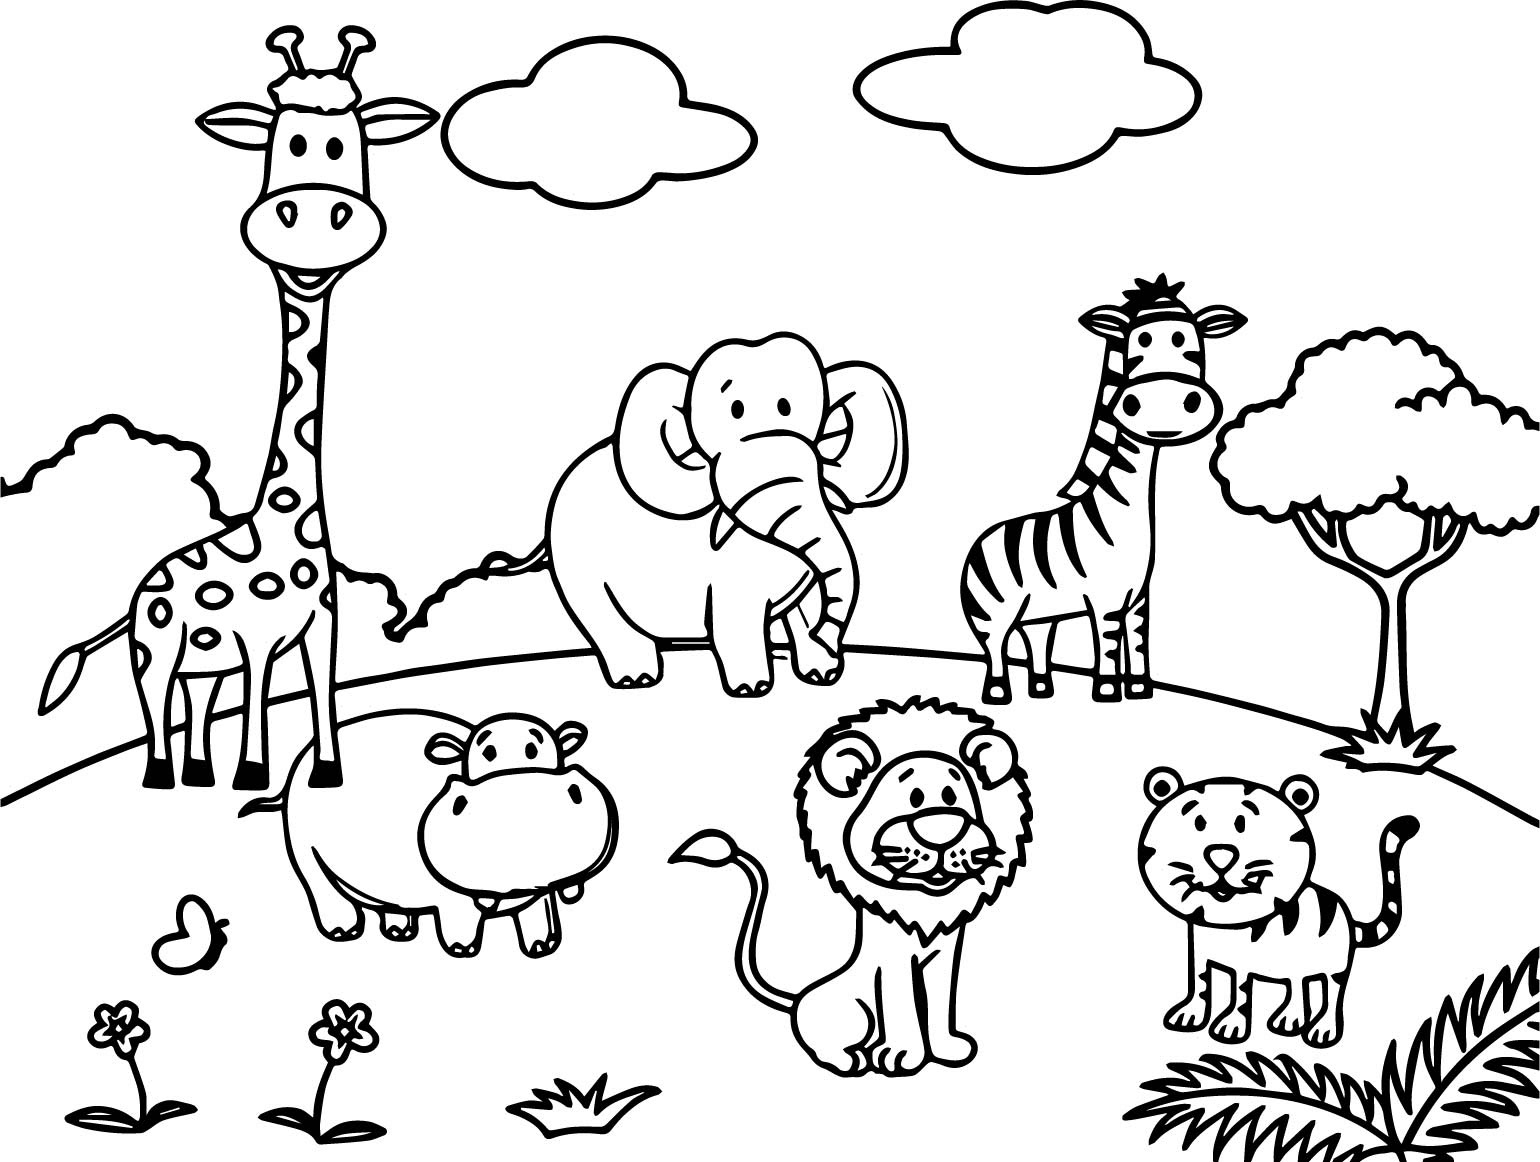 Jungle Animals Worksheet Activity sheet Color 5 - Coloring Pages